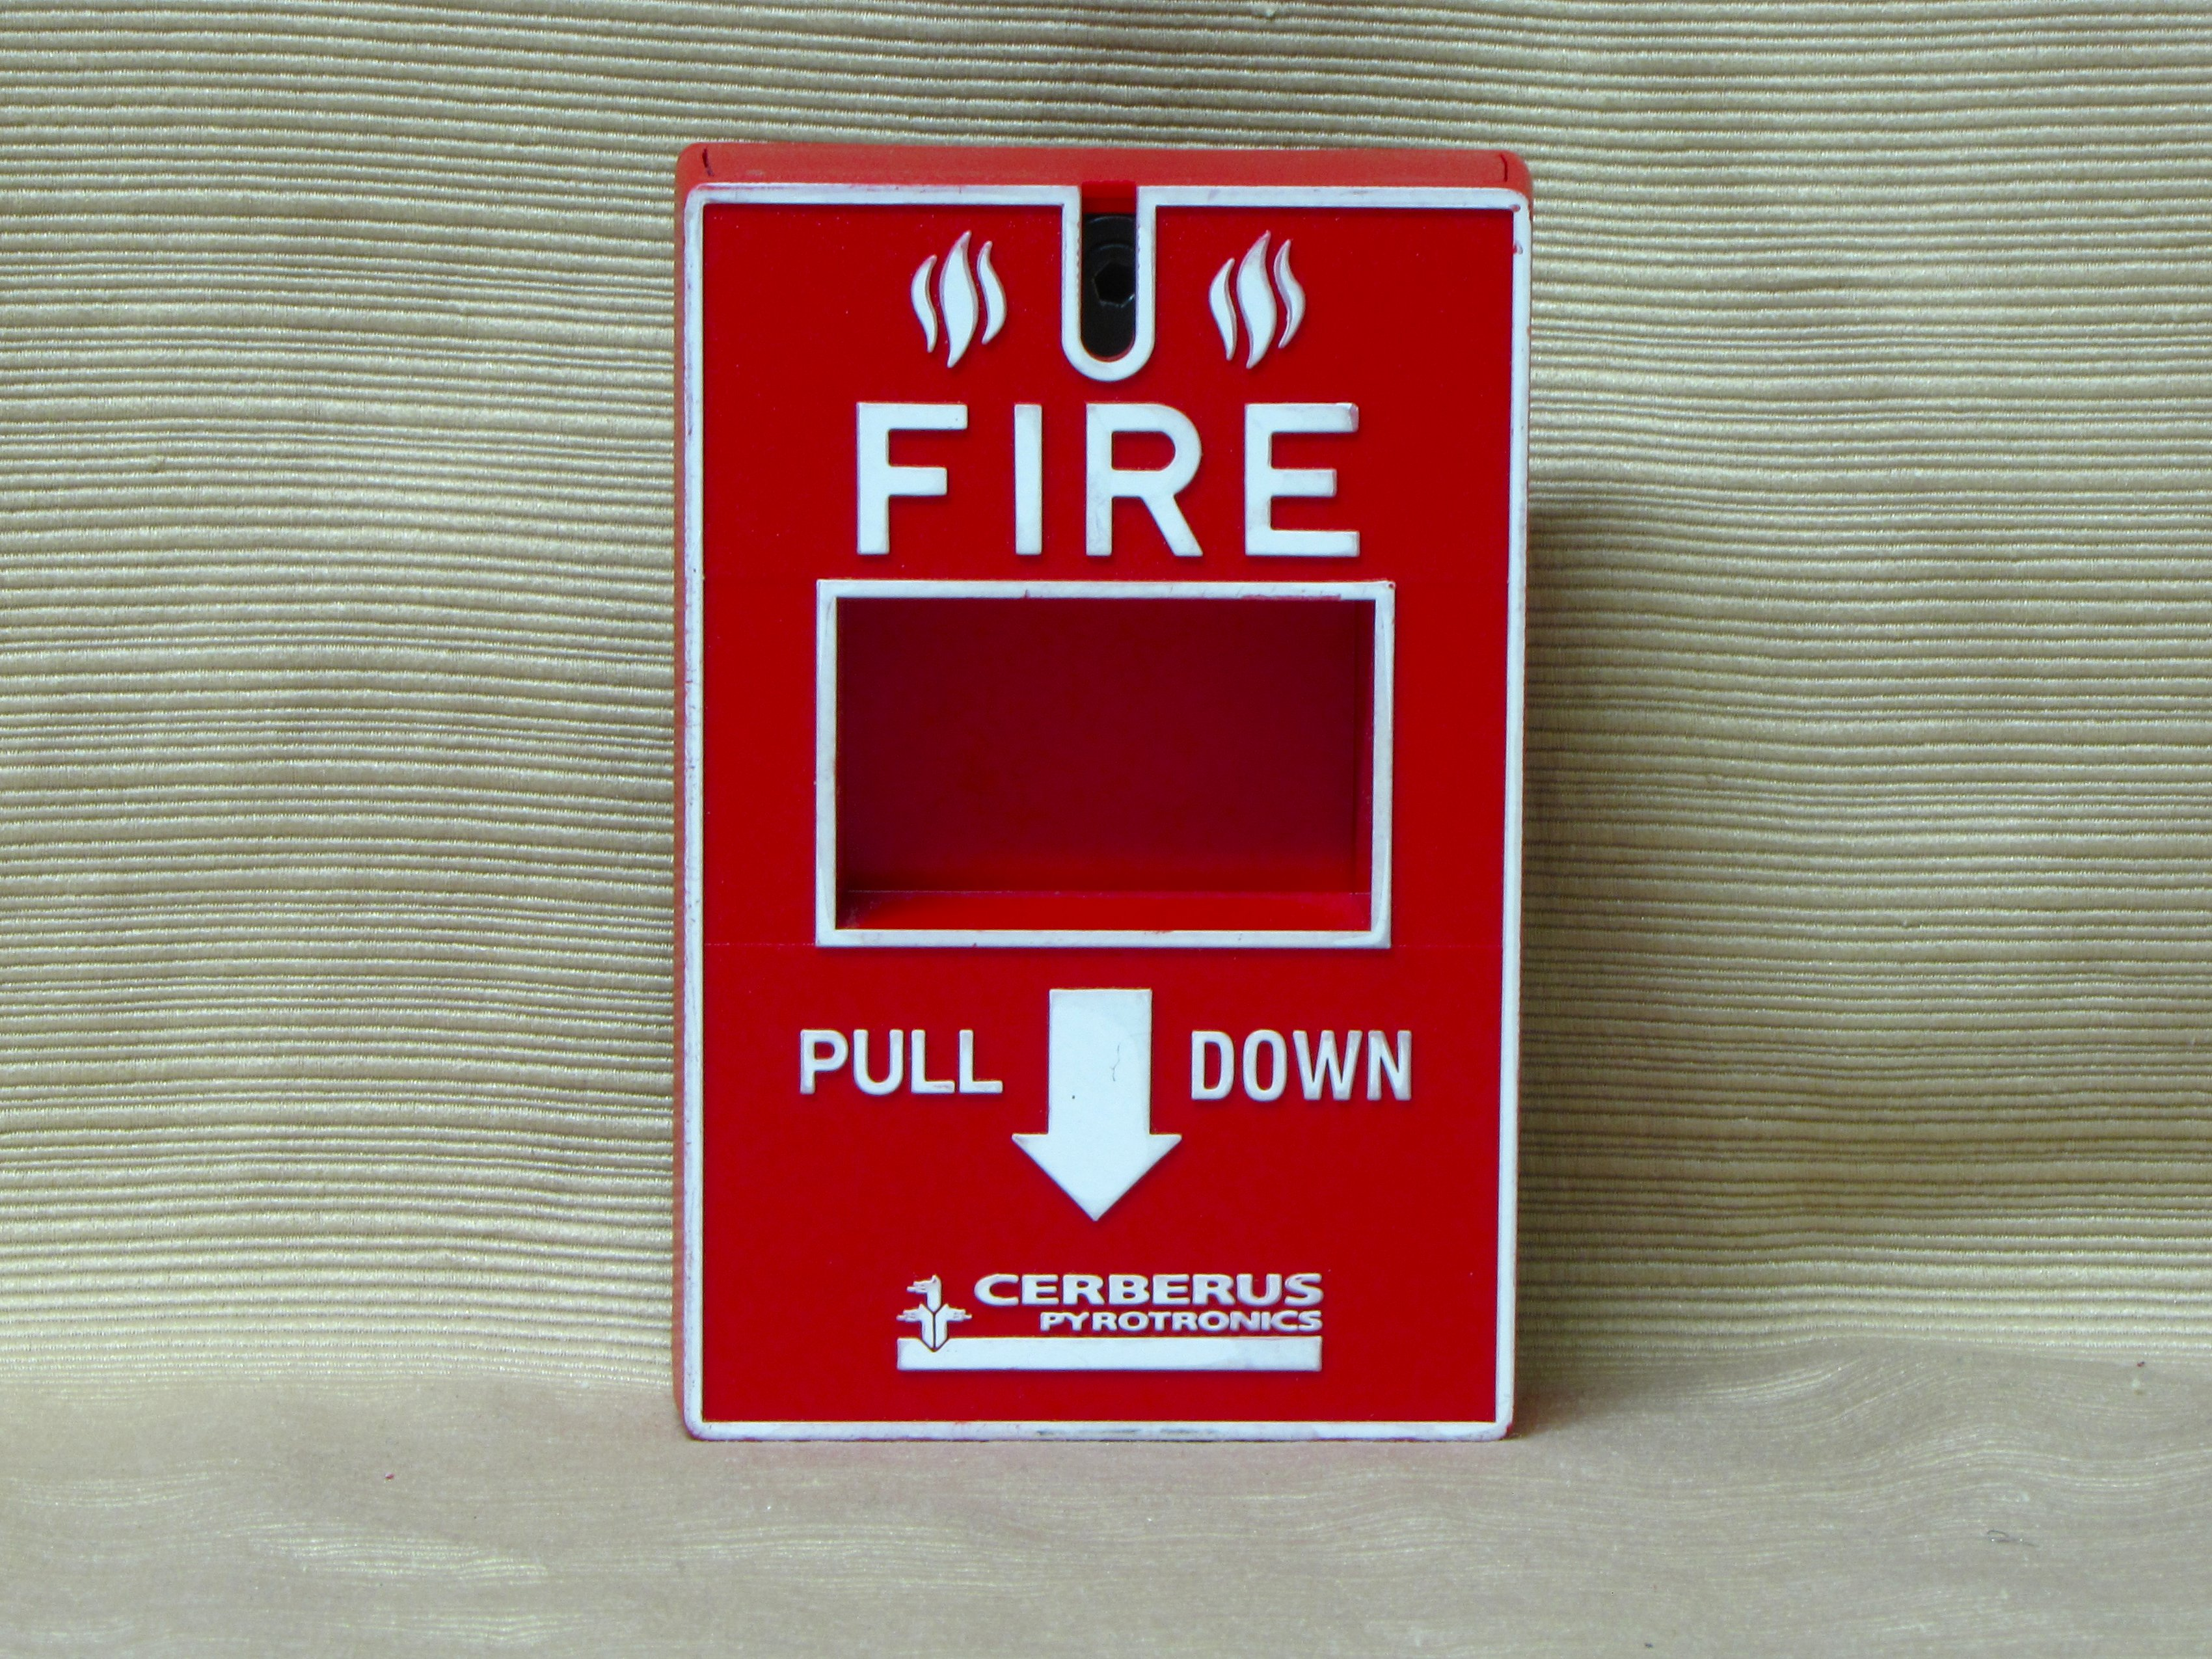 Watch additionally Smoke Alarms In Series Wiring Diagram besides Watch additionally Fire Alarms Control Panel also System Sensor. on simplex fire alarm